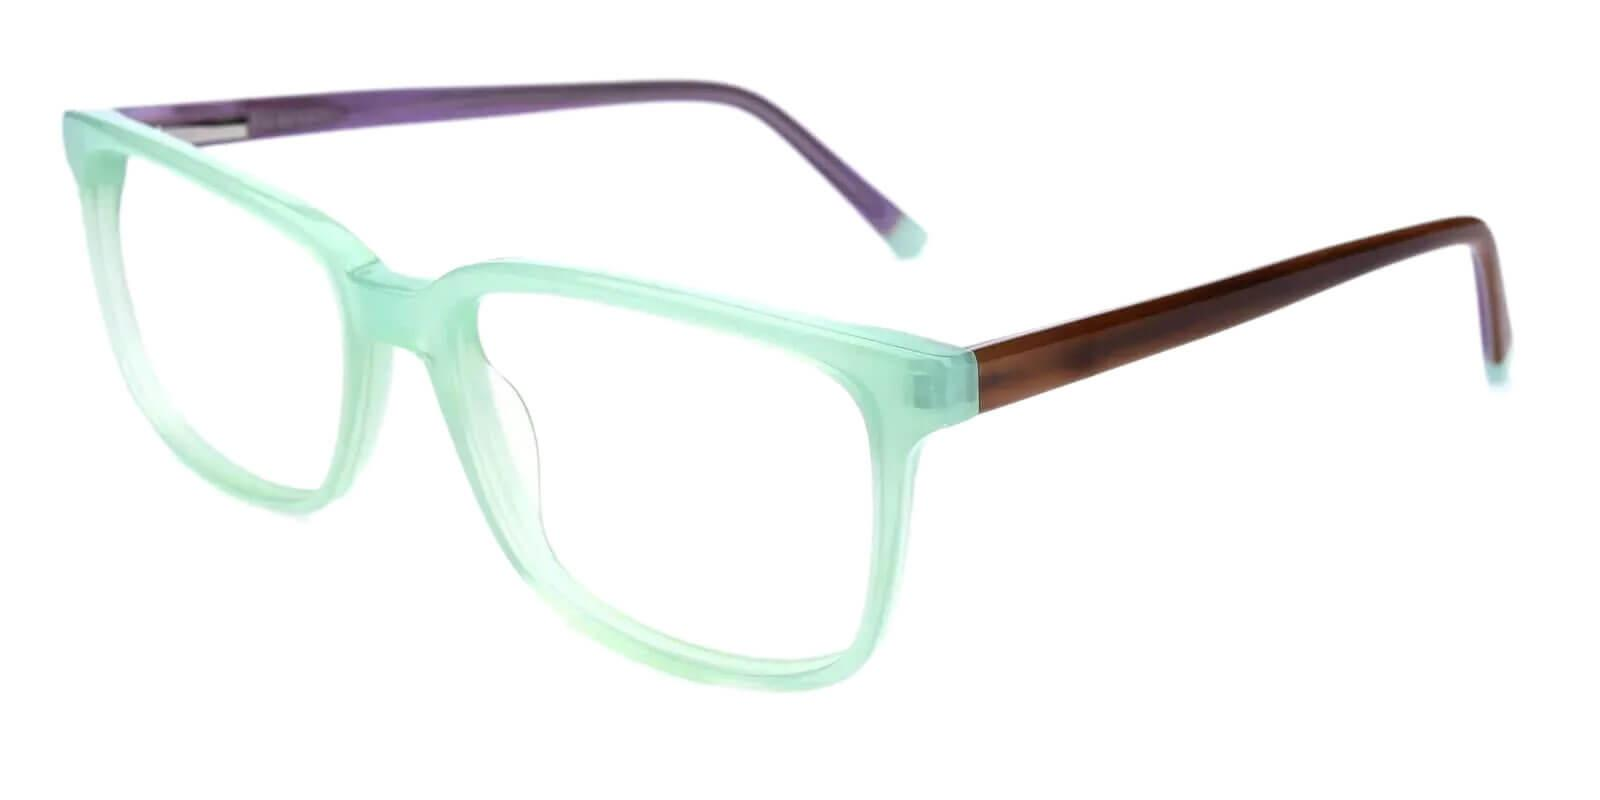 Leupp Corner Green Acetate Eyeglasses , SpringHinges , UniversalBridgeFit Frames from ABBE Glasses